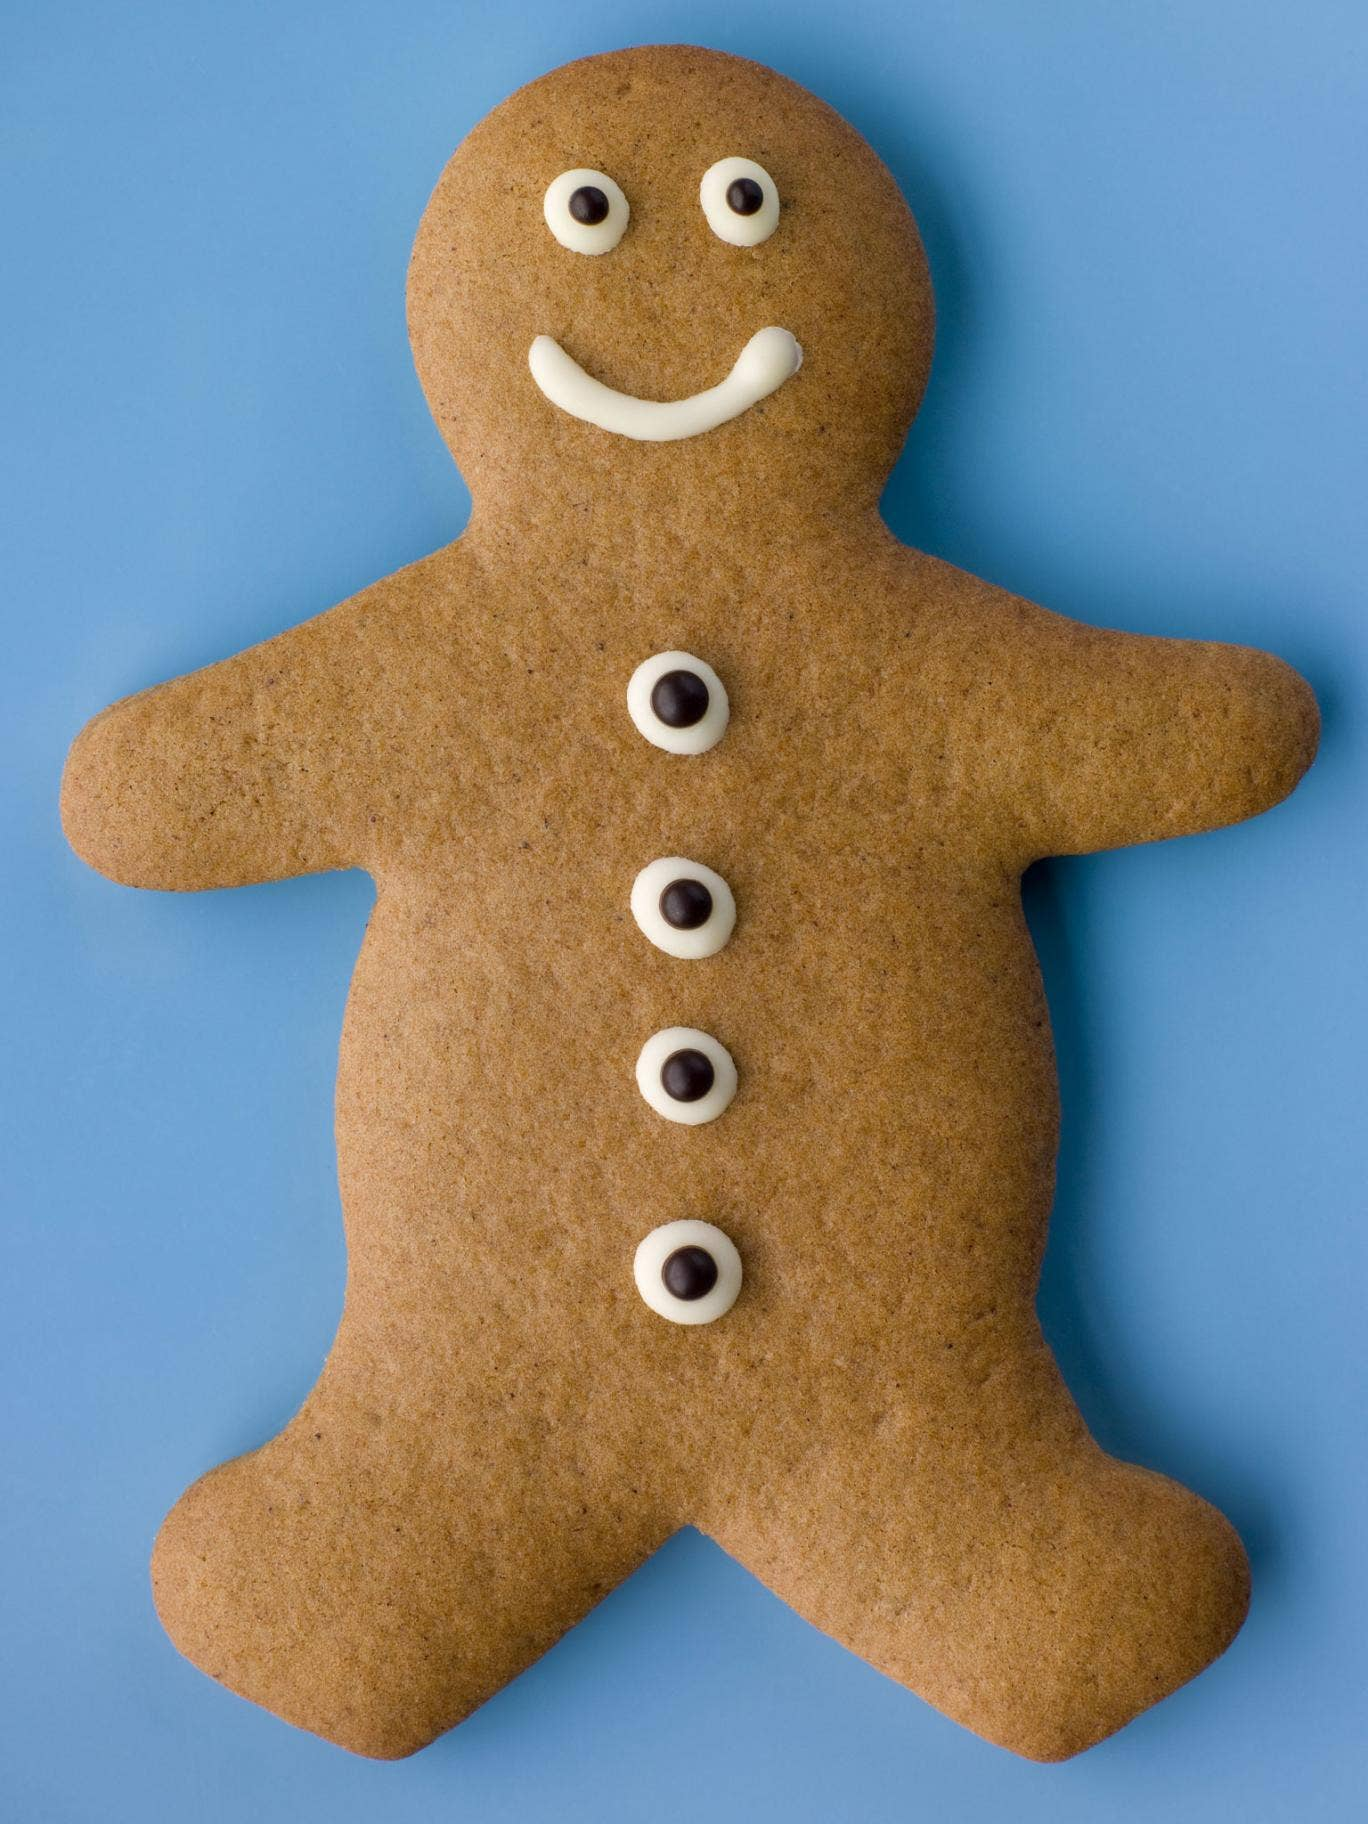 Gingerbread men: The most famous creation from ginger